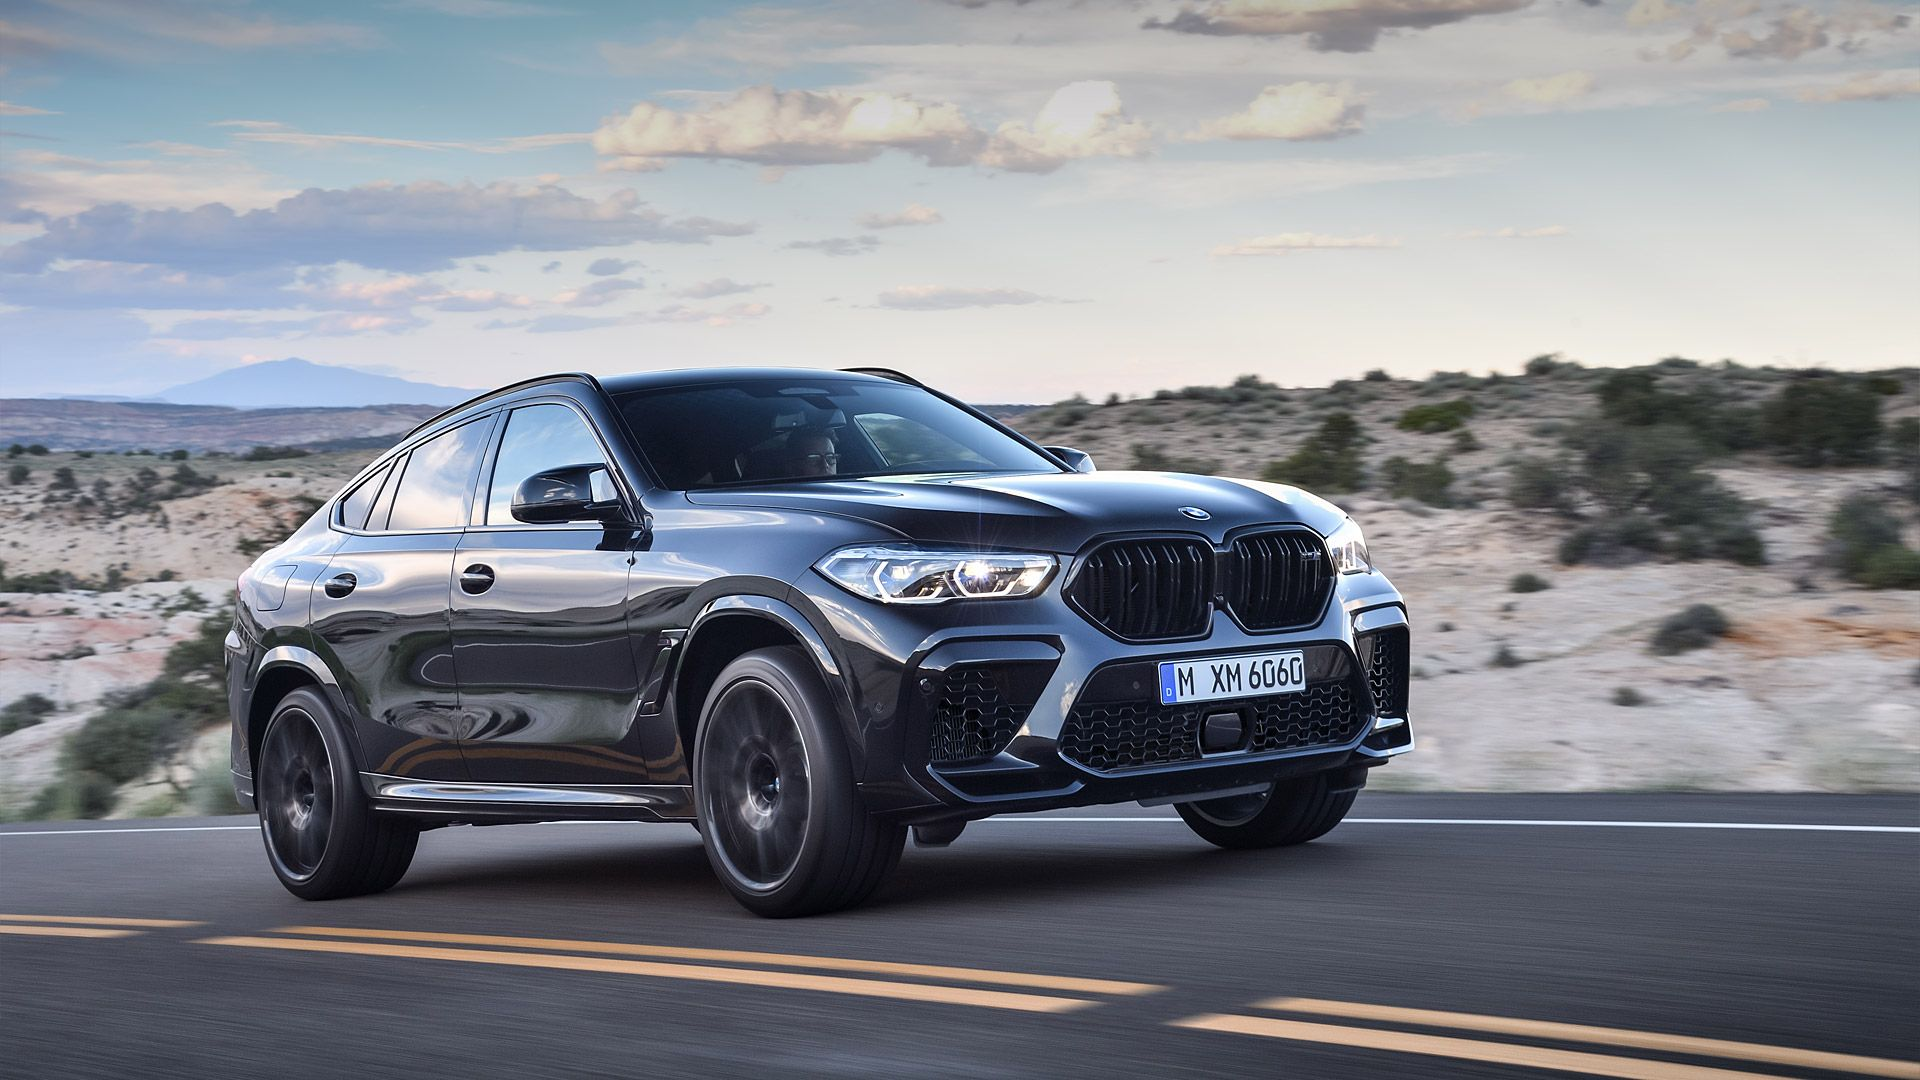 The Bmw X6 M Competition Is Coming In 2020 With 616 Horsepower And